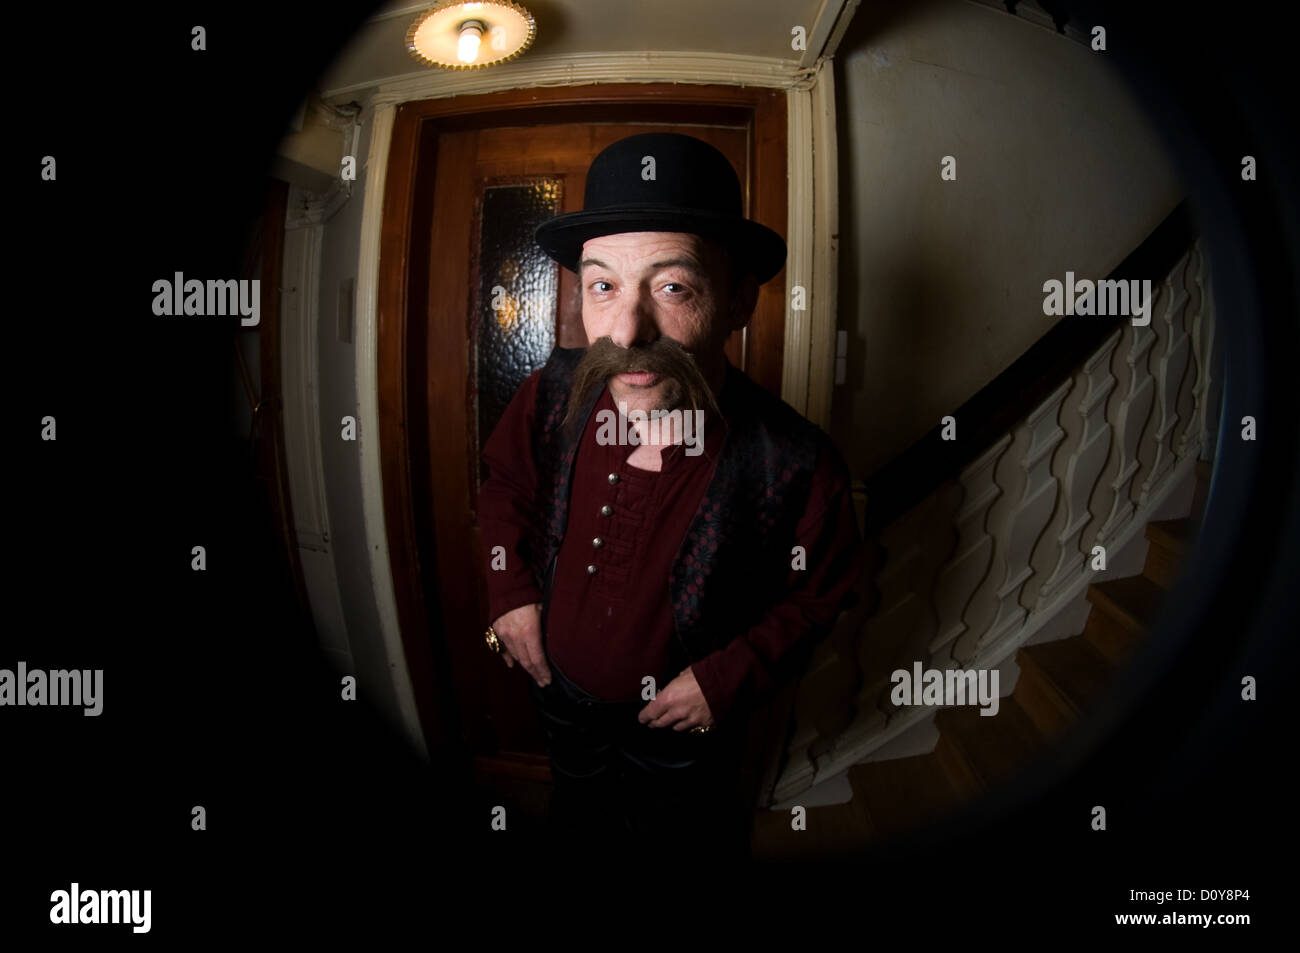 Freiburg, Germany, crafty man is coming up - Stock Image